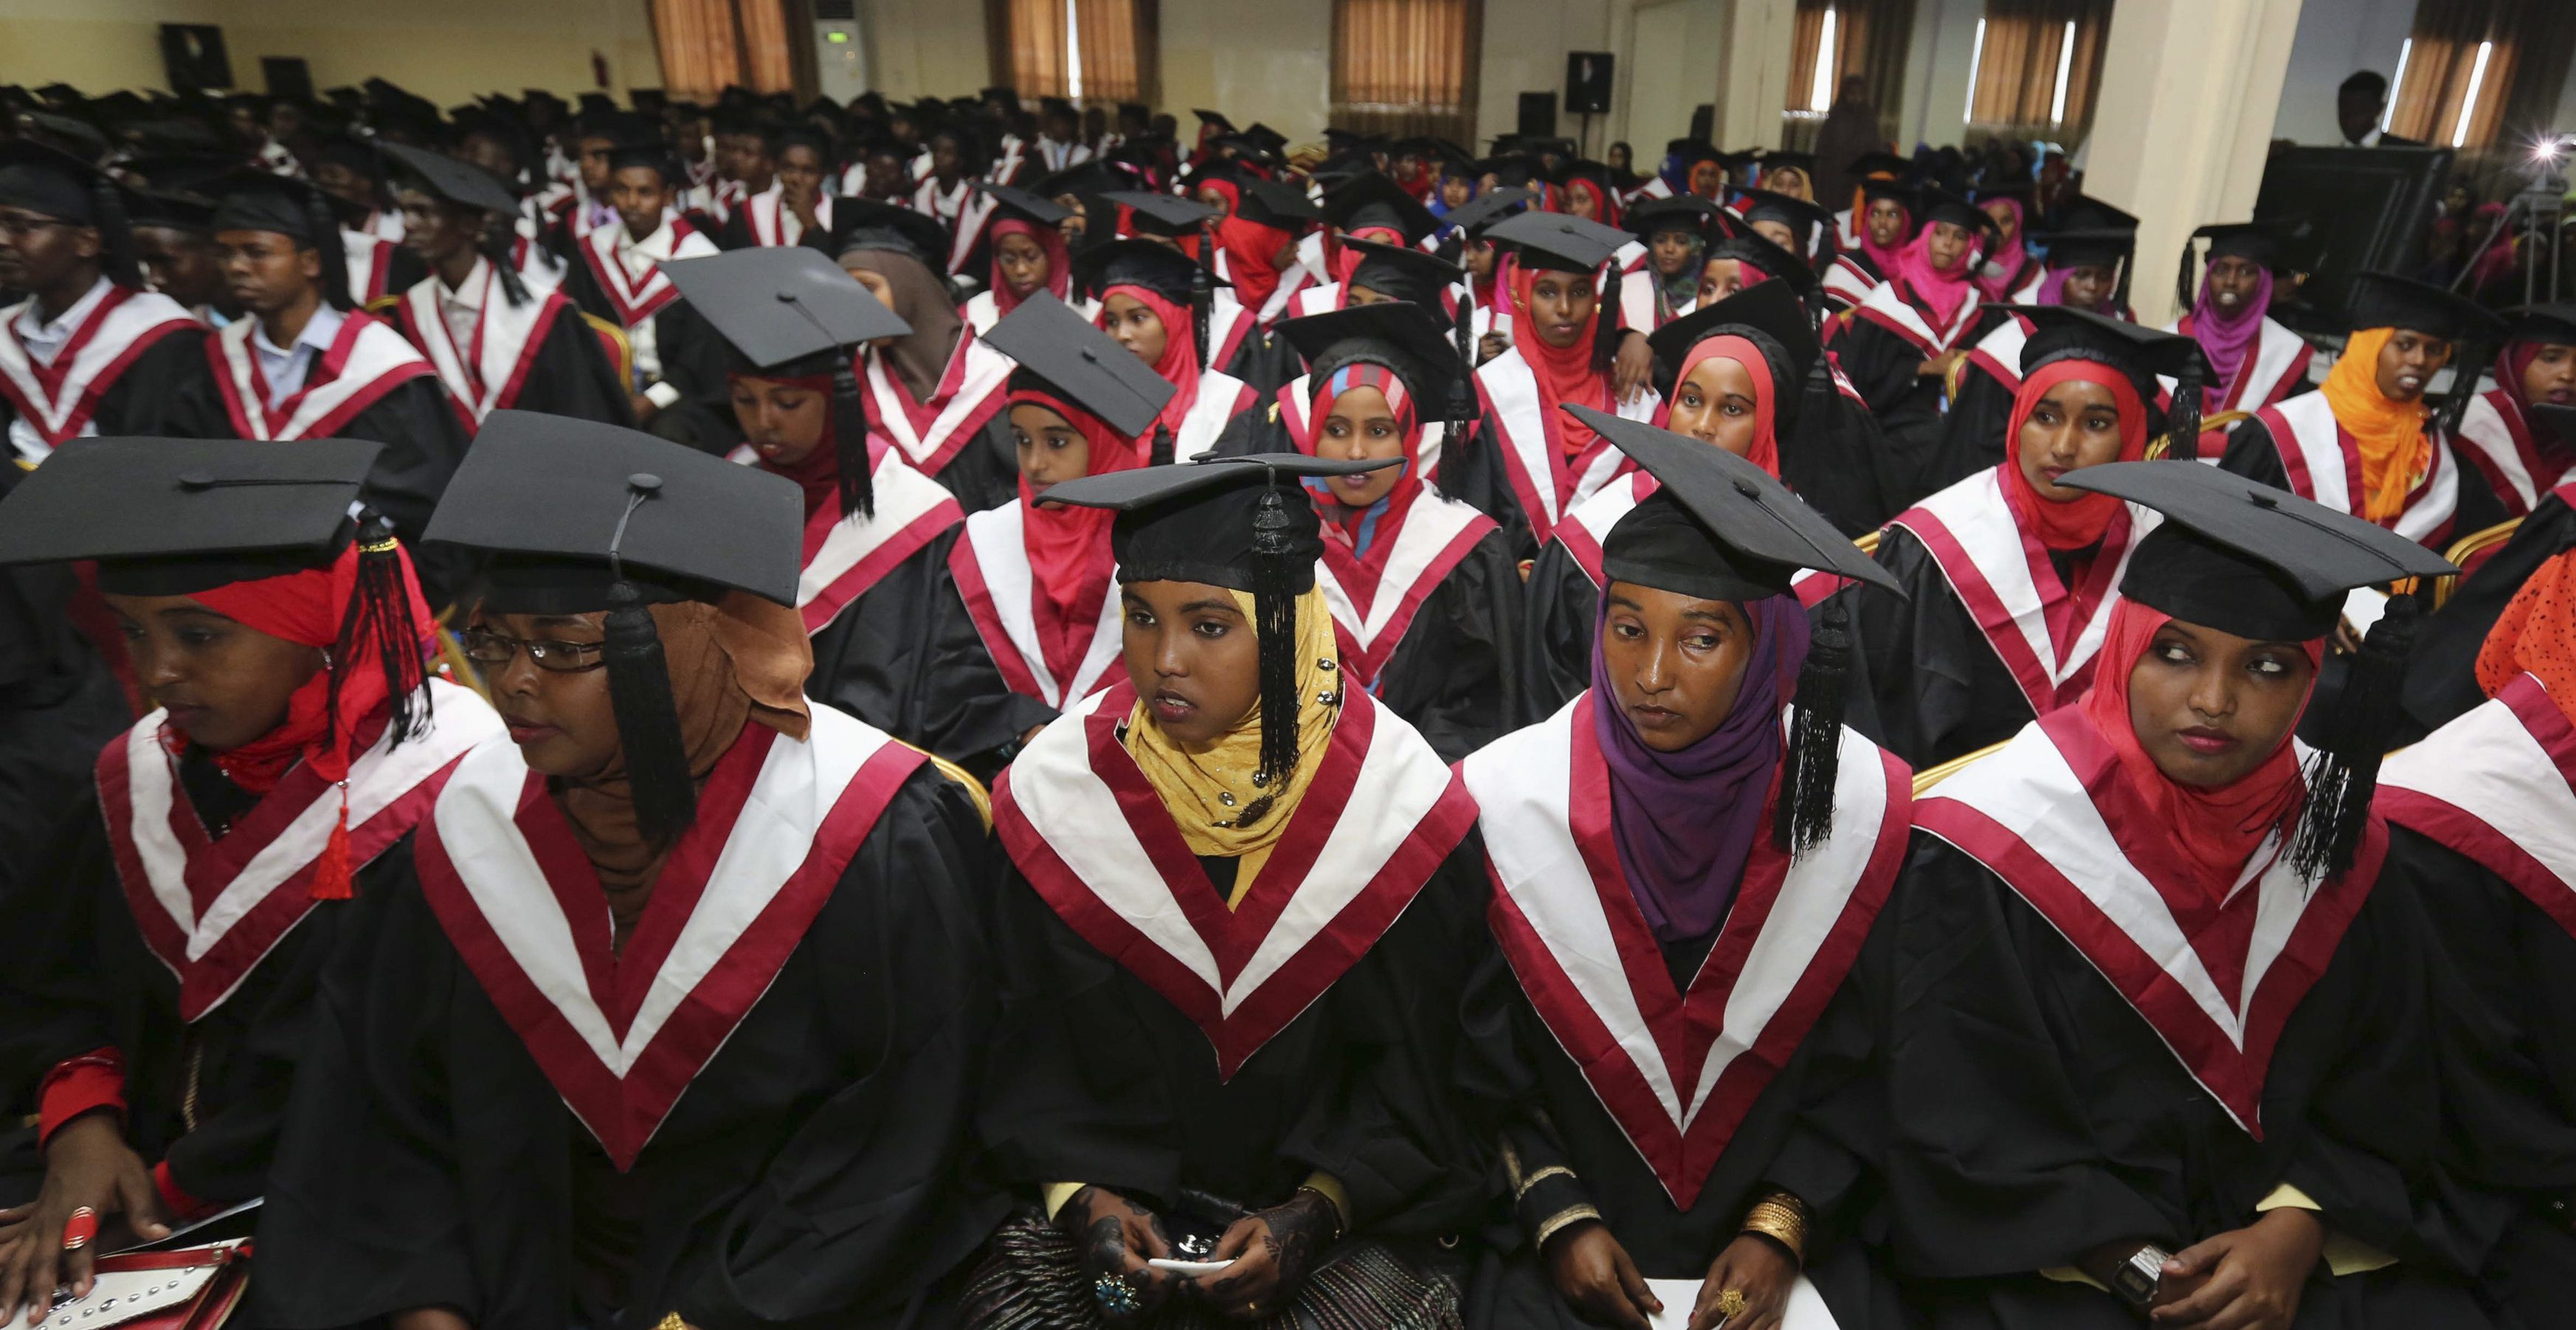 A section of 740 graduating students from Simad University, look on during their graduation ceremony, in the capital Mogadishu, November 28, 2013. The number of graduates today is the highest since the collapse of the Somalia military regime in 1991, according to school officials.